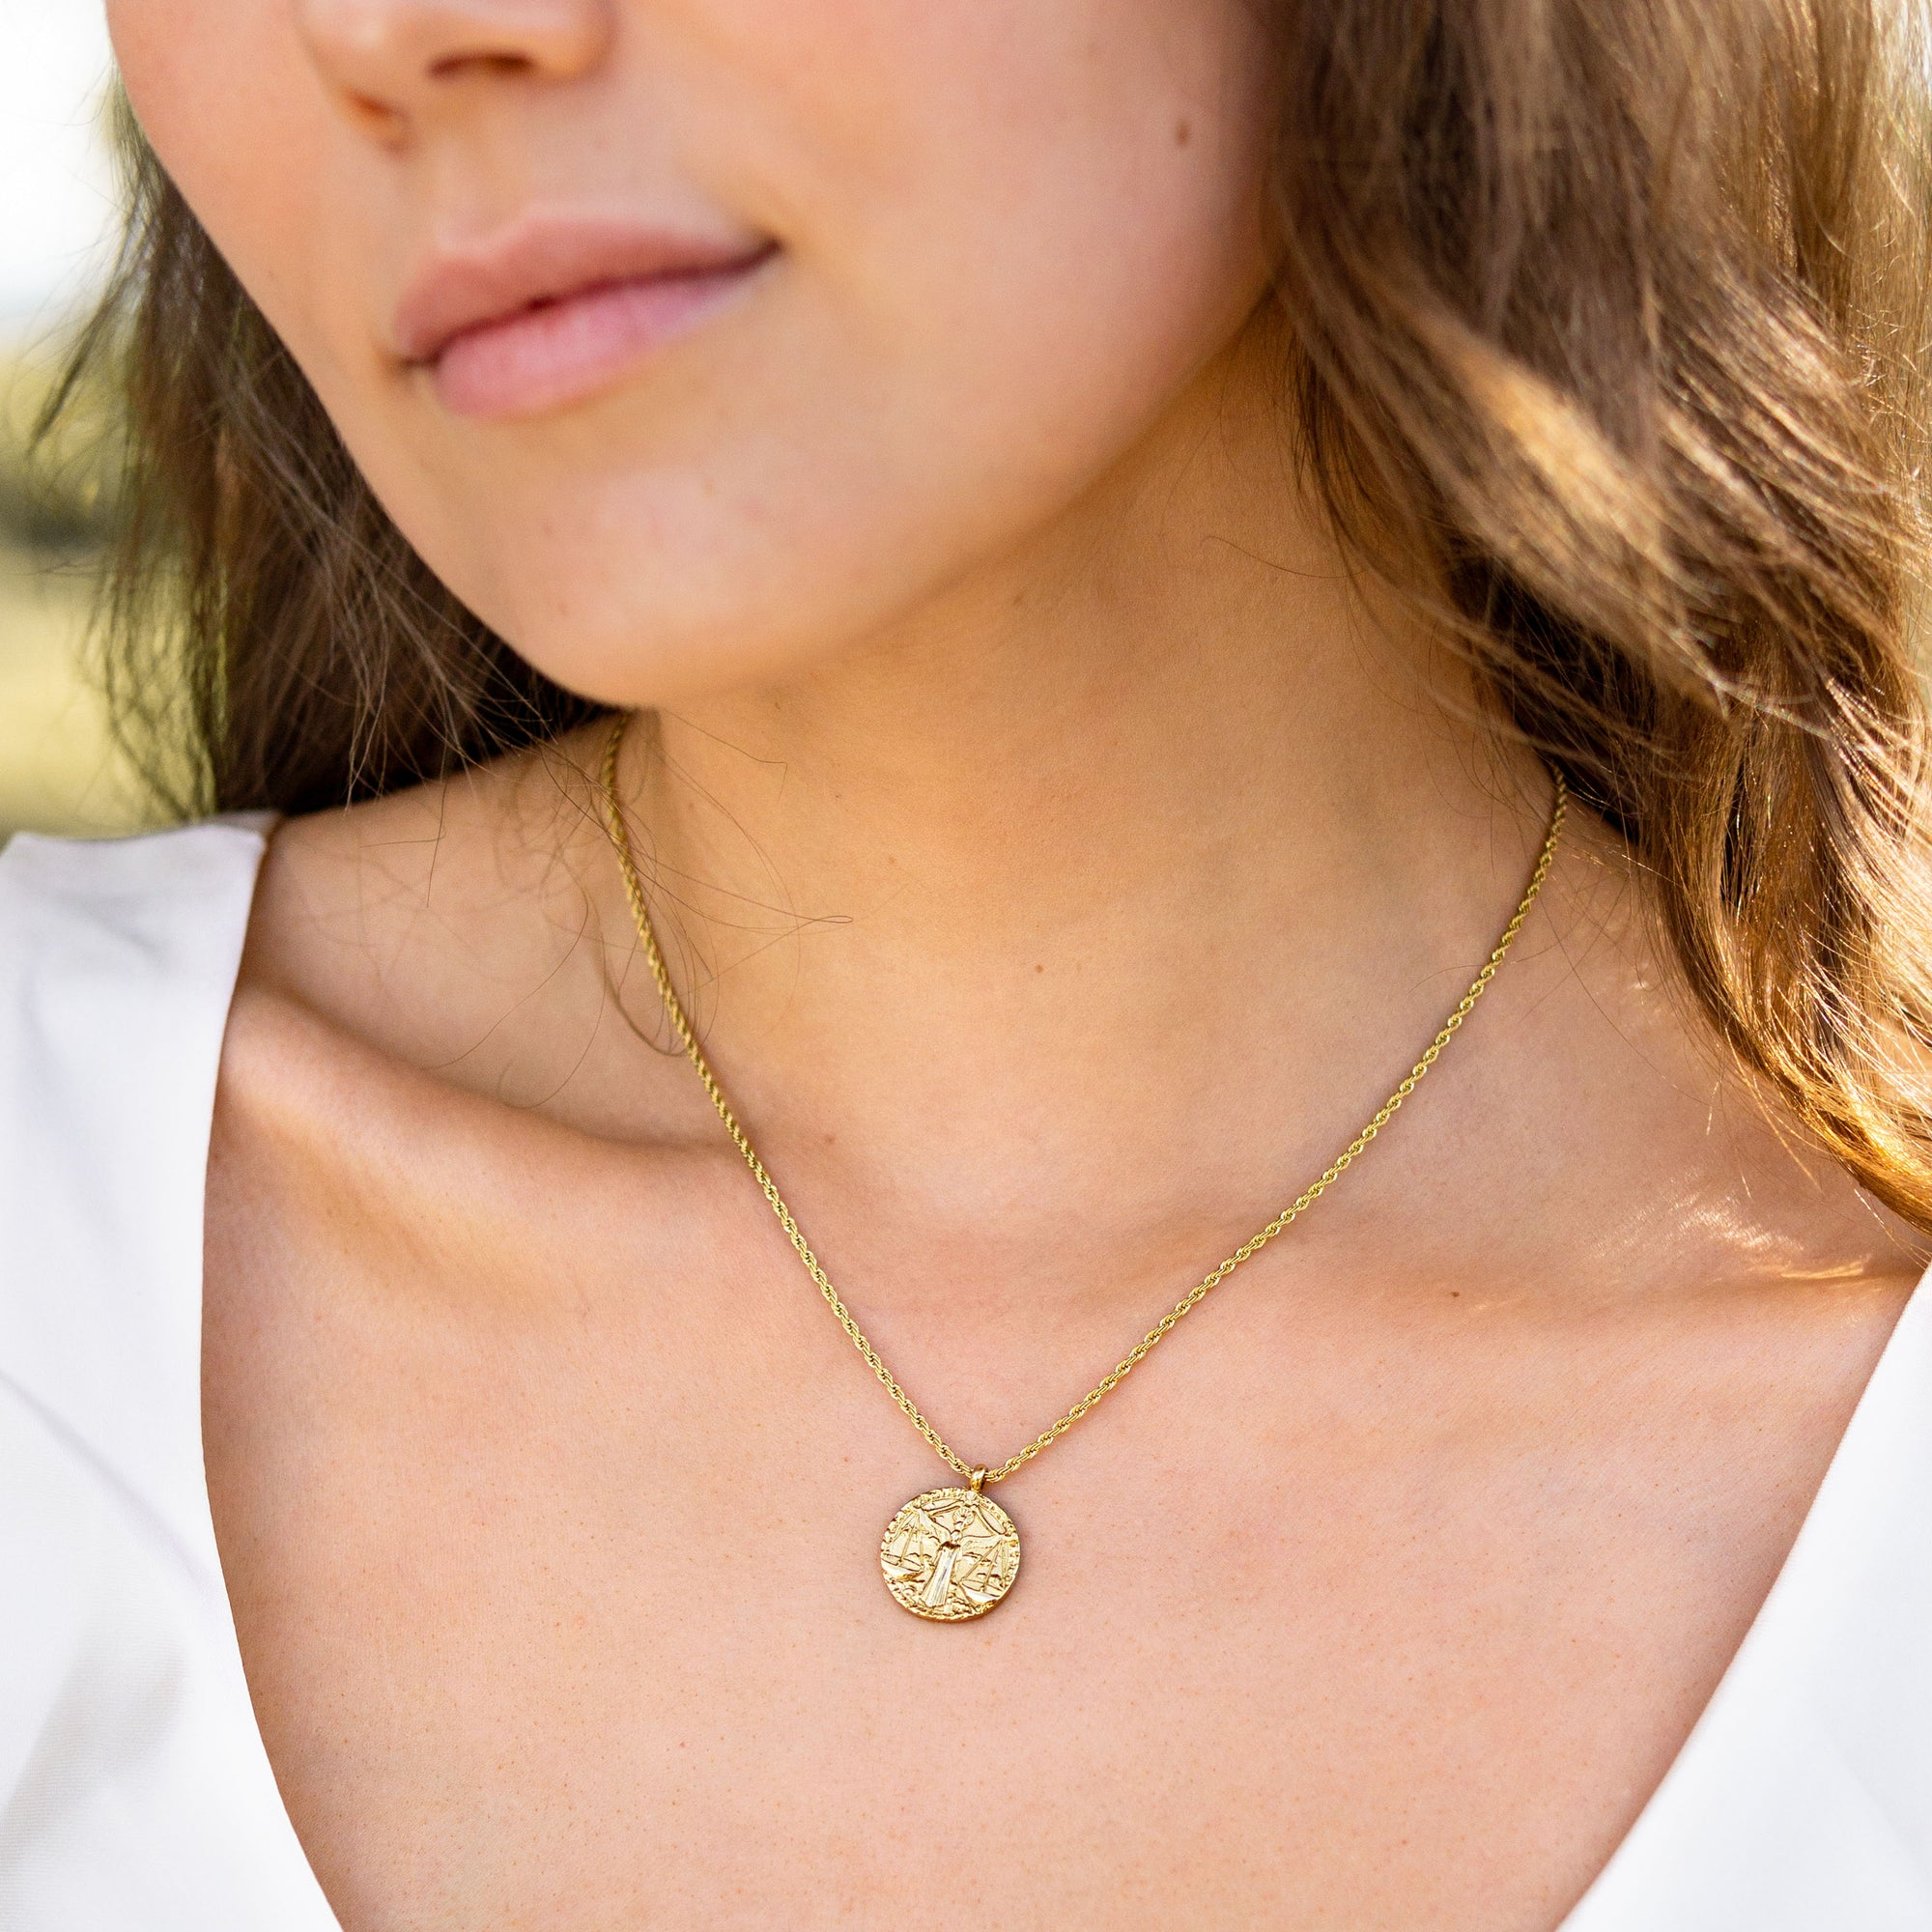 Libra / Waage Necklace Gold